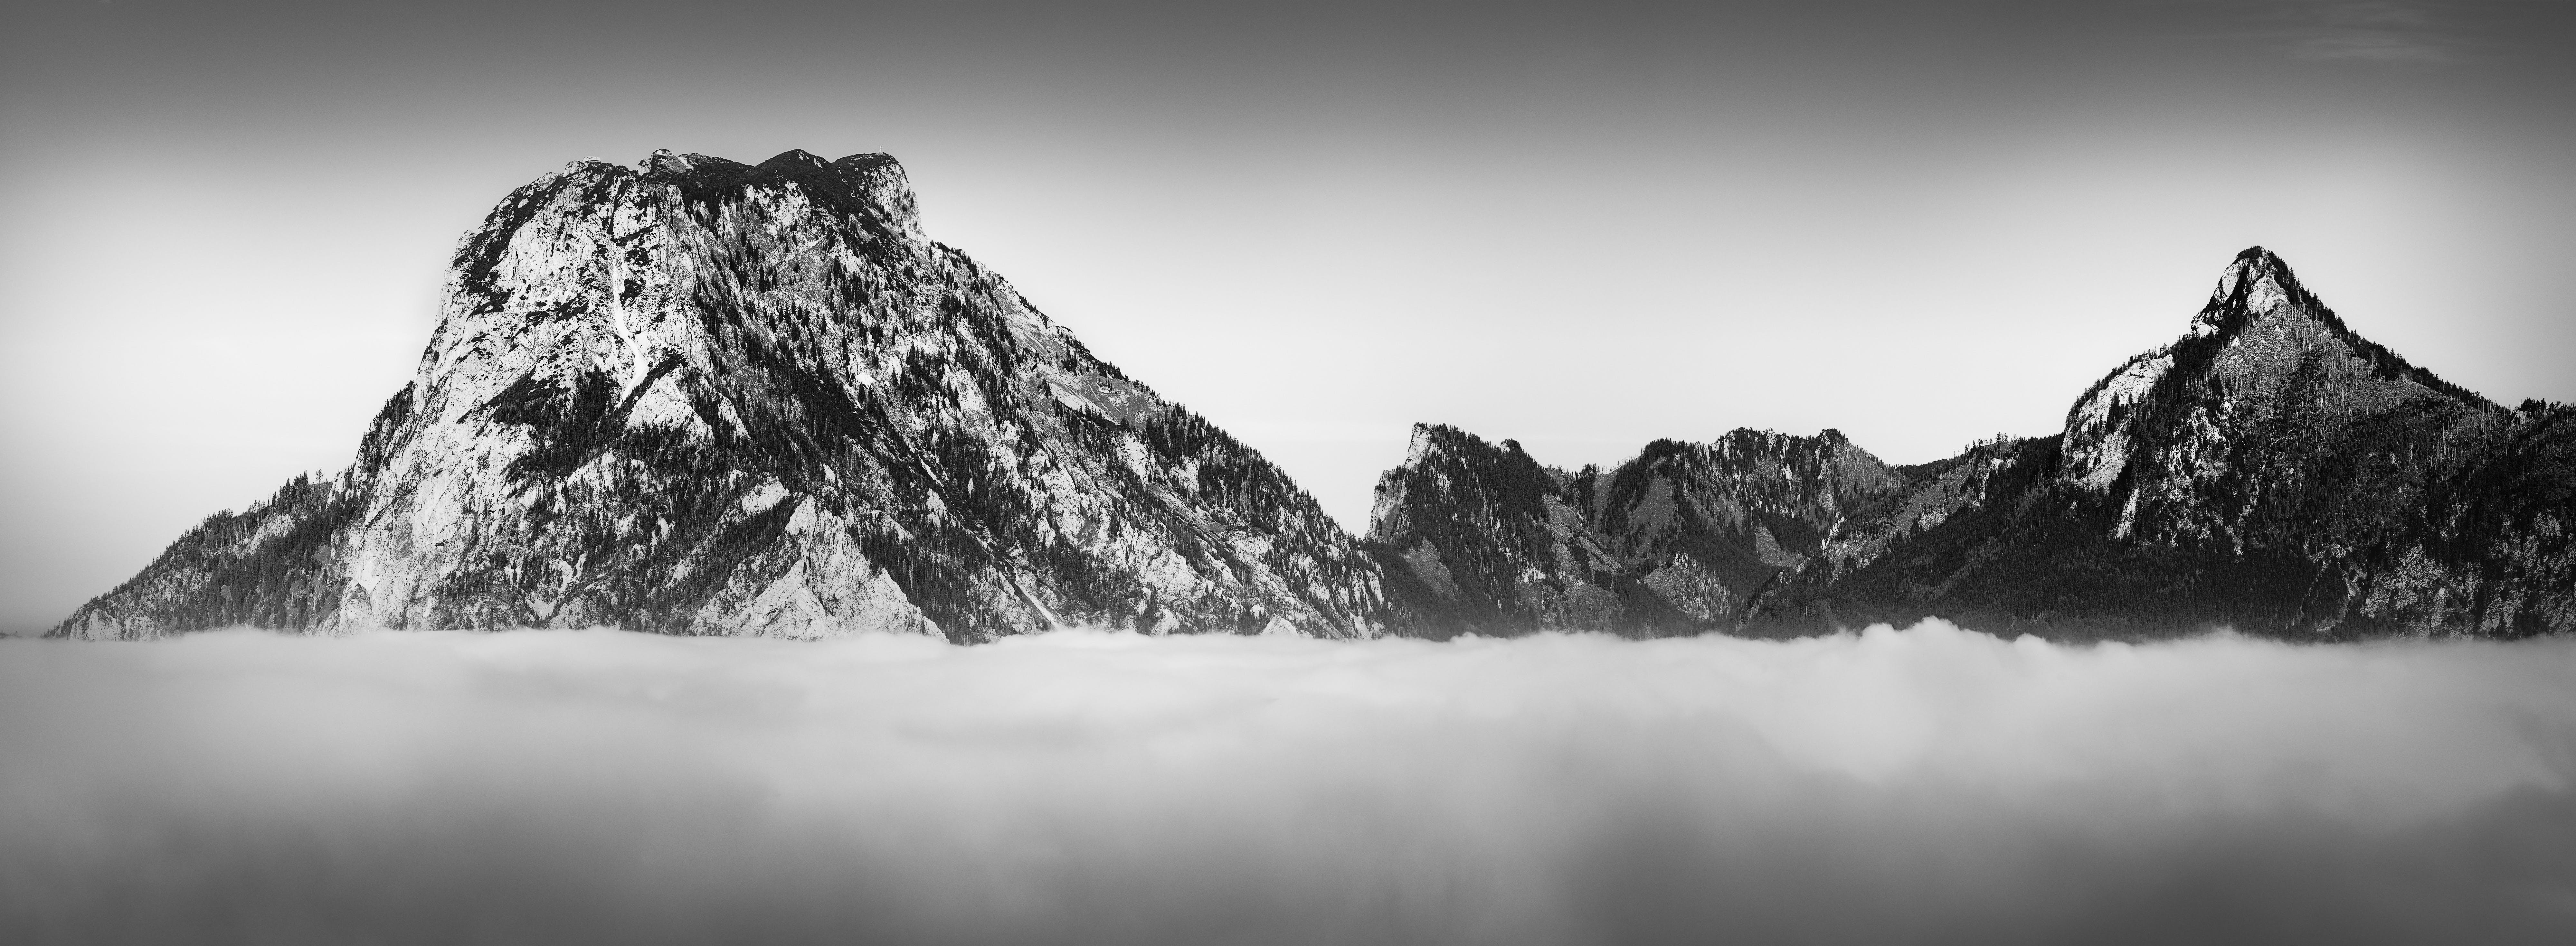 Grayscale Photography of Rock Mountains